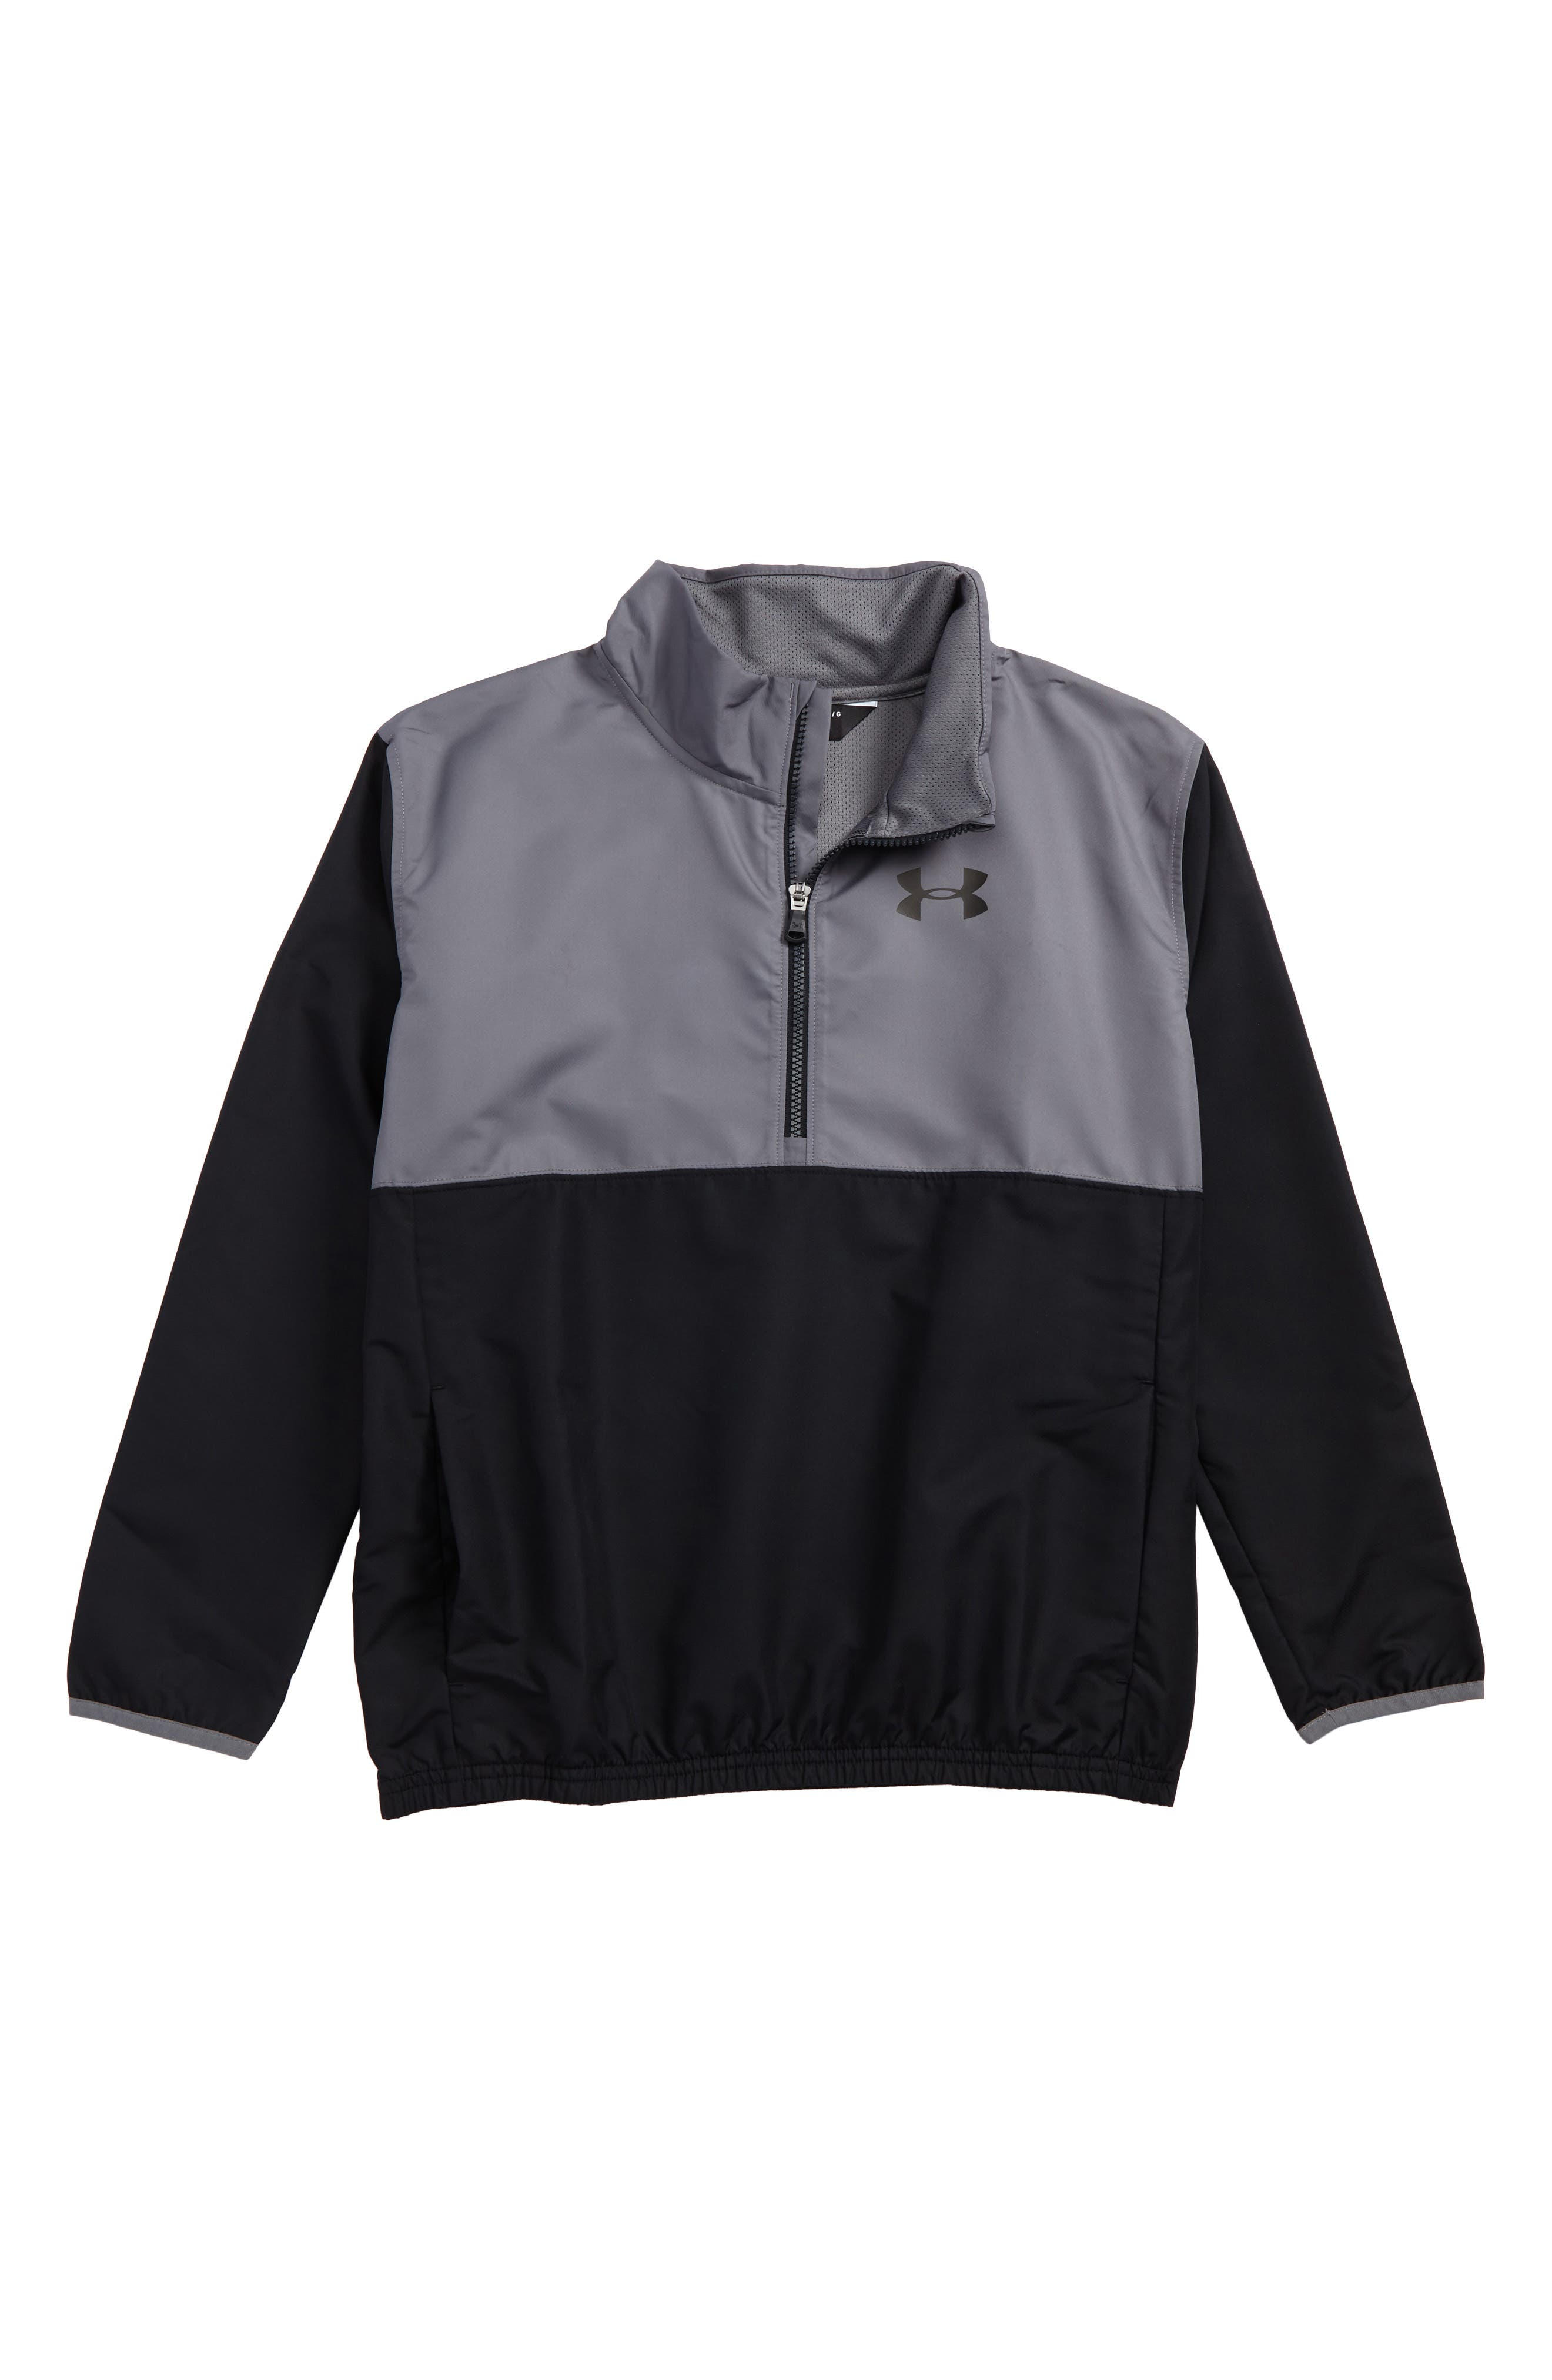 Main Image - Under Armour Train to Game Half Zip Pullover (Little Boys & Big Boys)